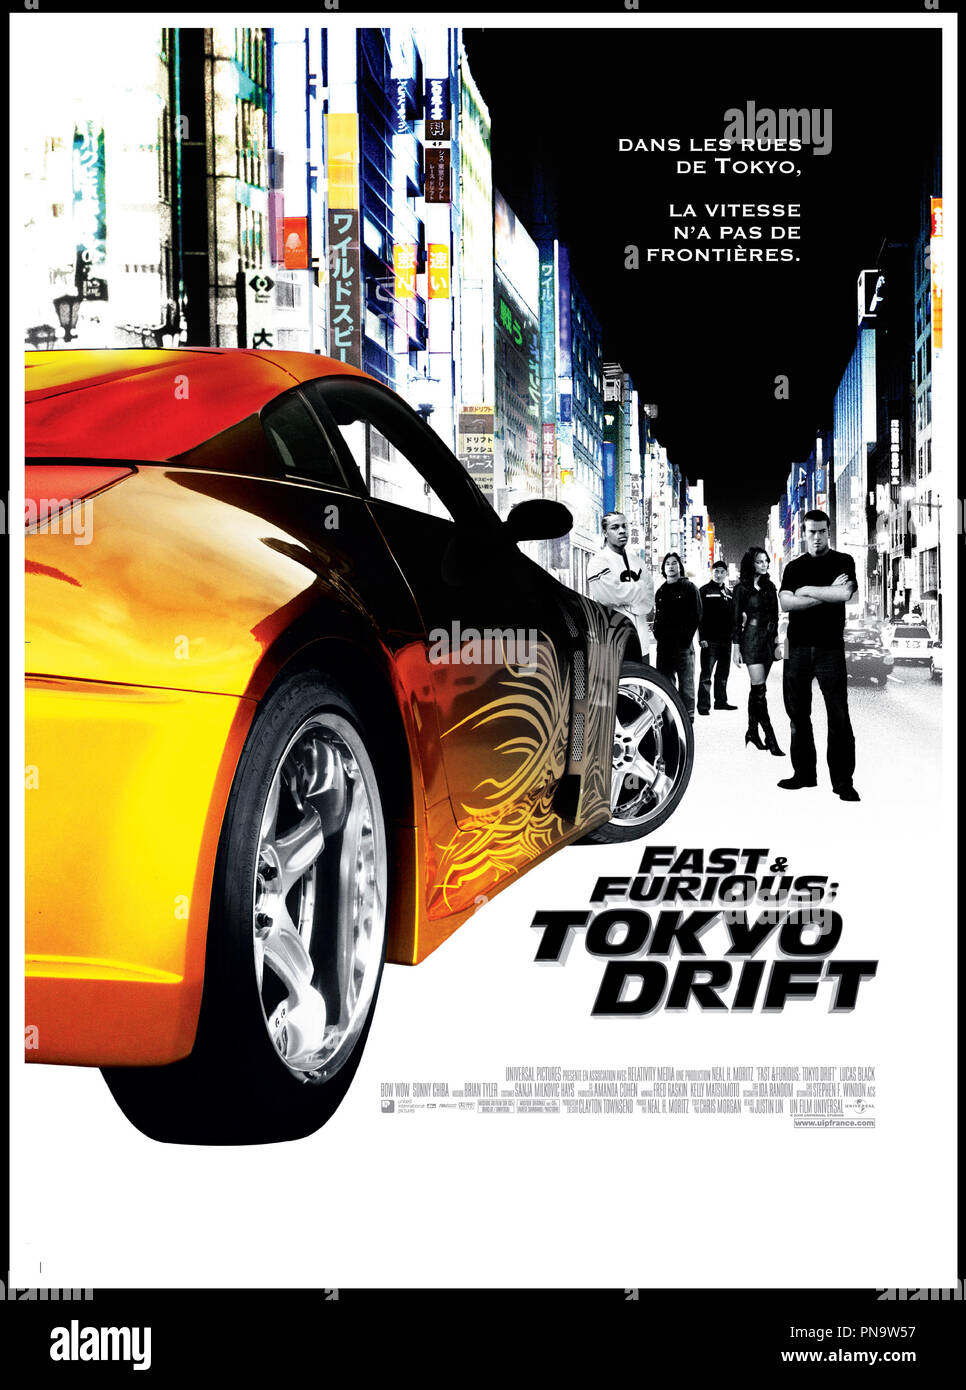 Fast And Furious 3 Full Movie >> Fast And Furious 3 Tokyo Drift Full Movie Free Download Watch The